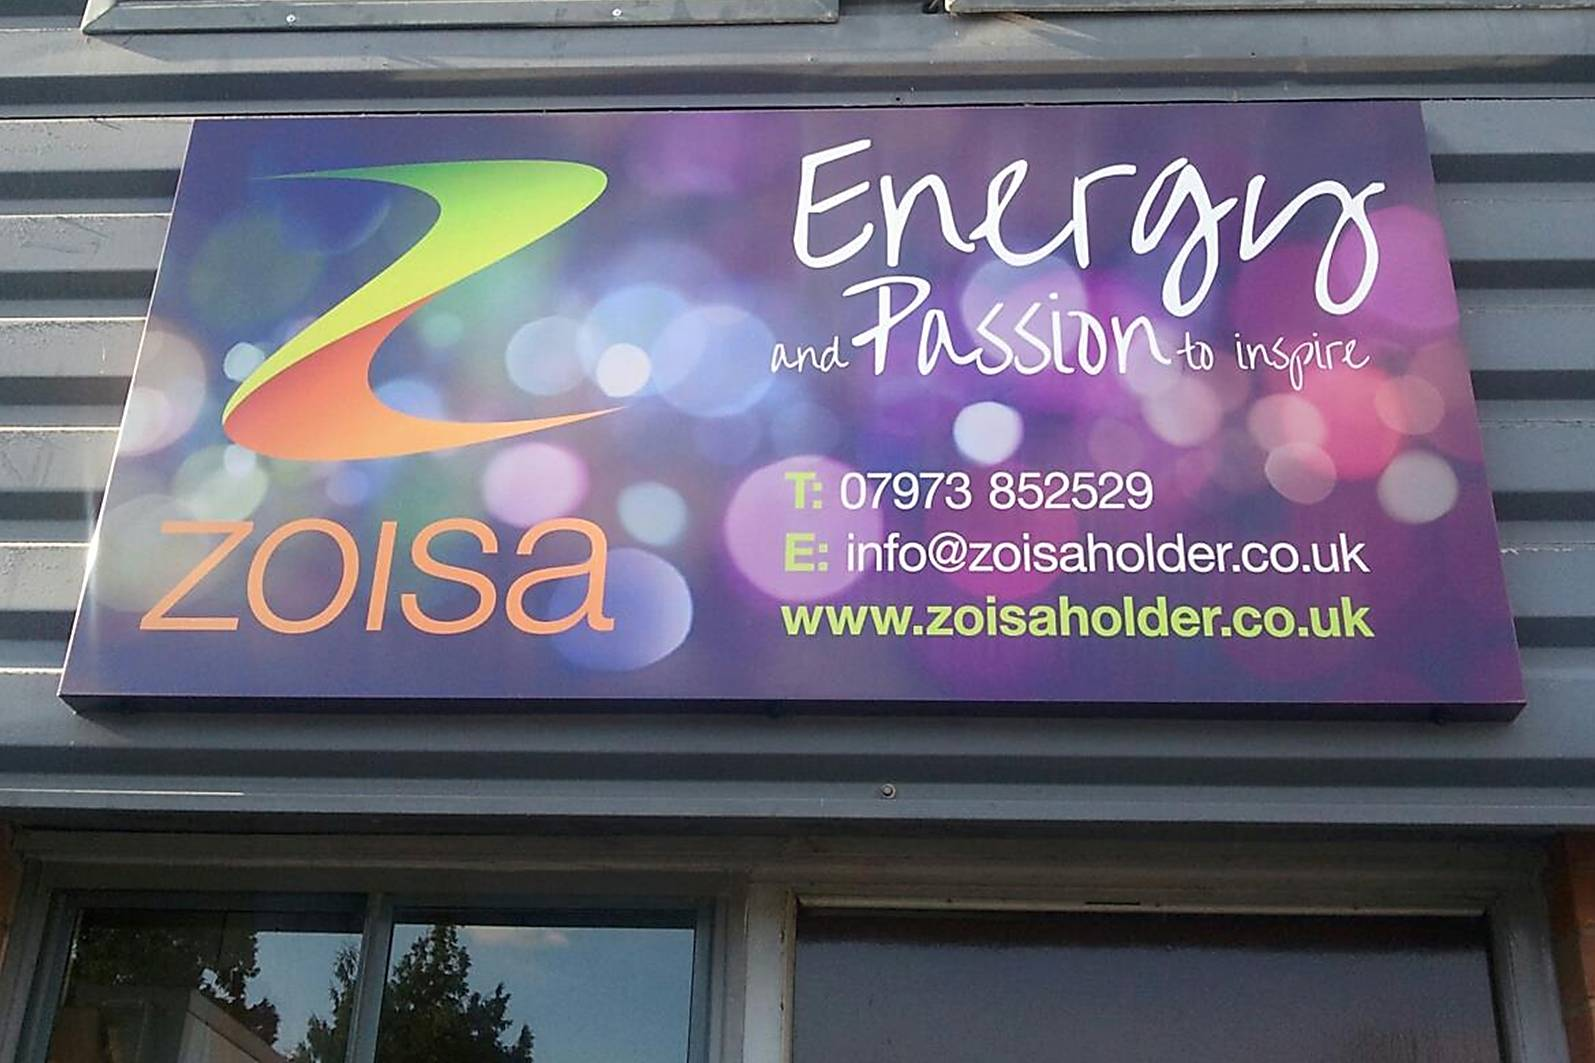 zoisa sign zoomed in